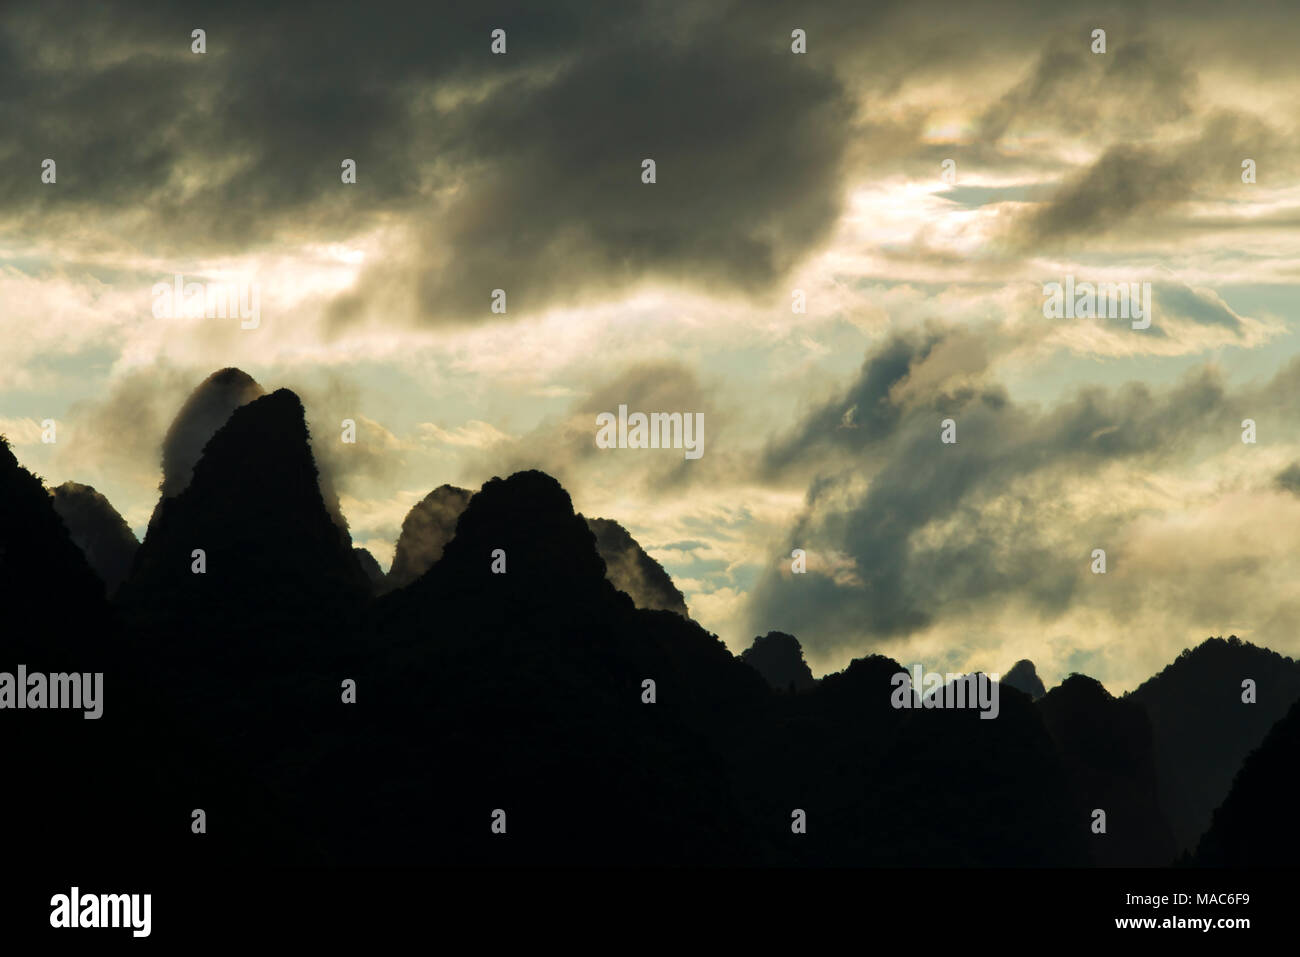 Moon Hill at sunset, Yangshuo, Guangxi, China Stock Photo